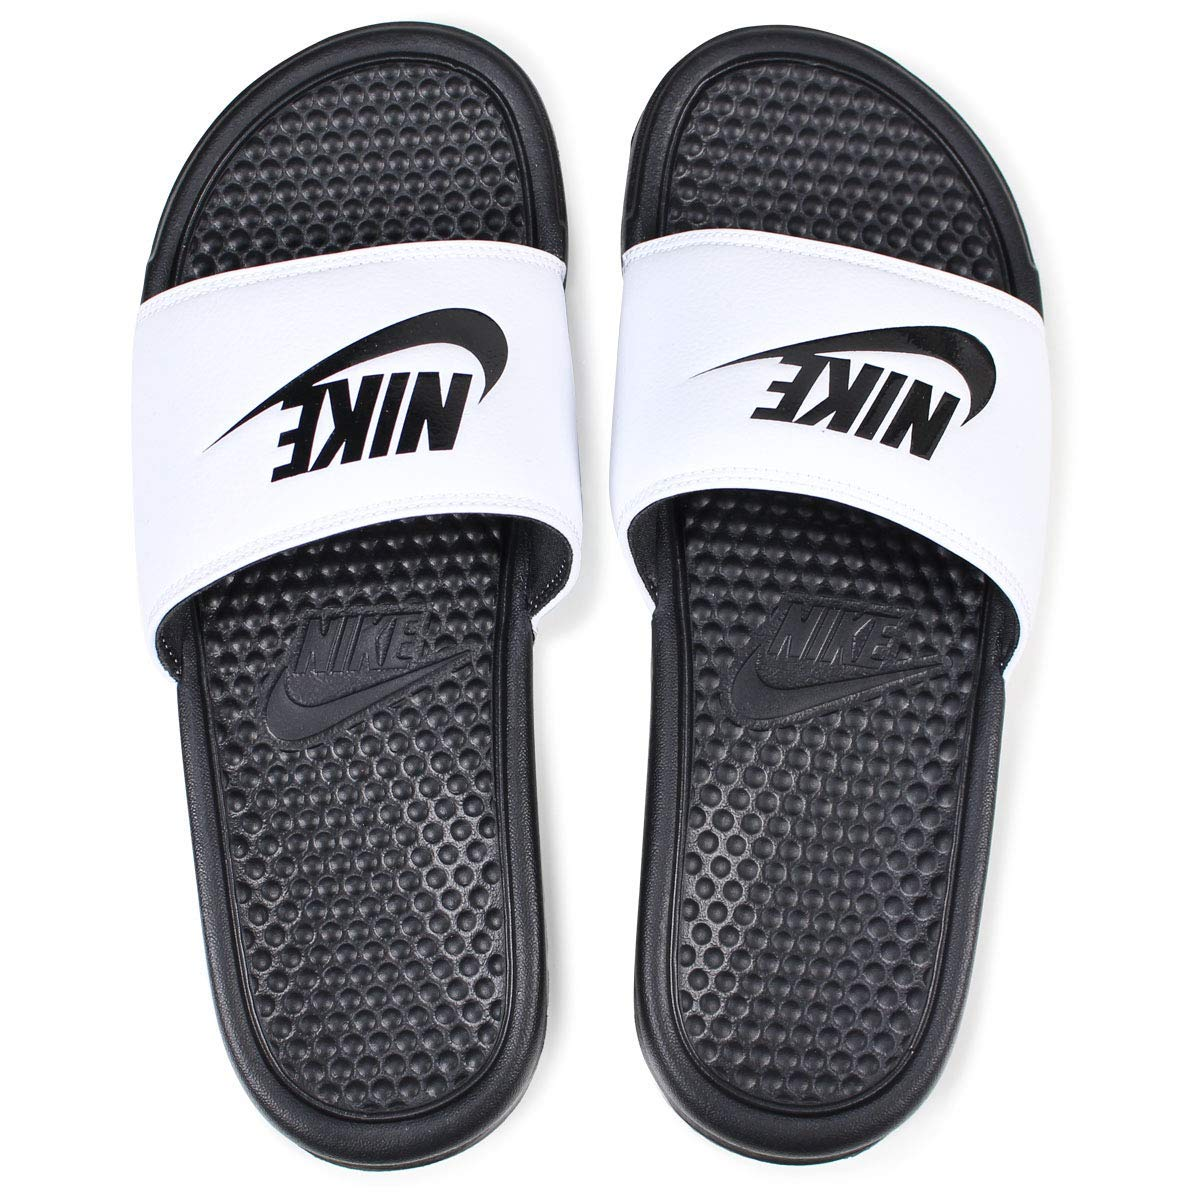 b8e47b1c911250 Nike Benassi JDI Mens Sandals White Black 343880-100  Buy Online at Low  Prices in India - Amazon.in